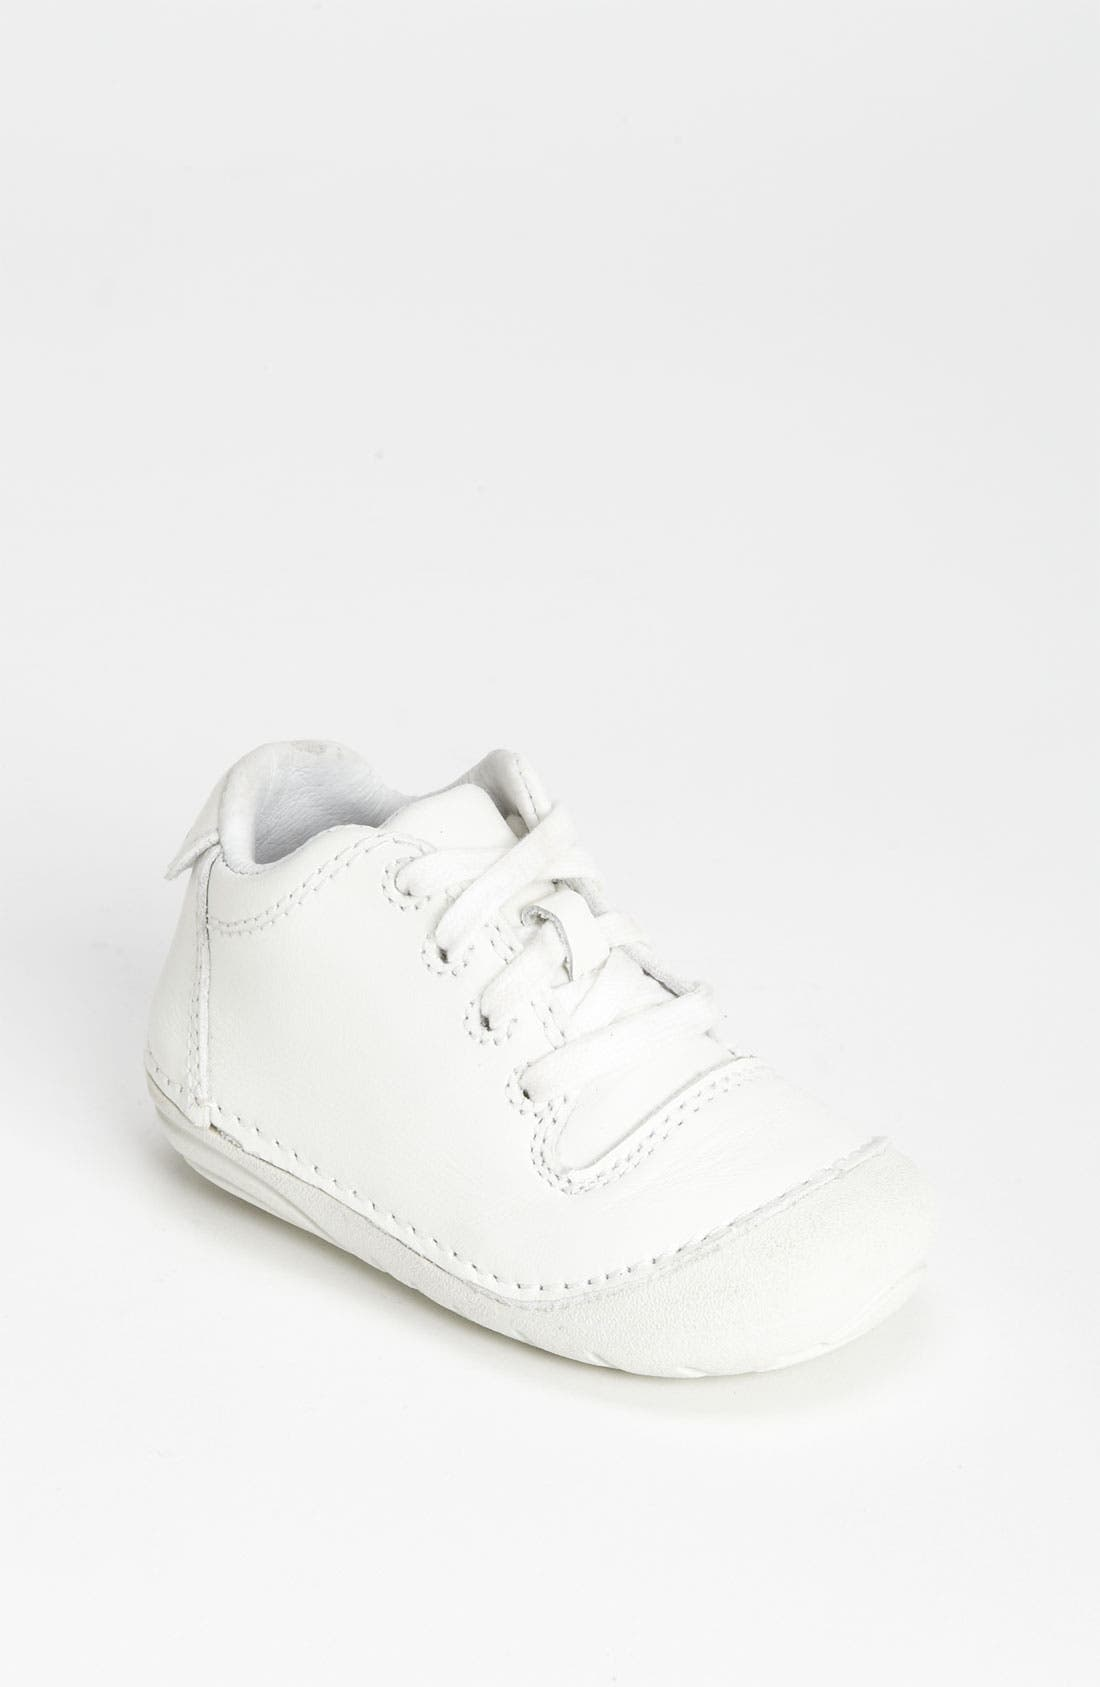 Alternate Image 1 Selected - Stride Rite 'Freddie' Sneaker (Baby & Walker)